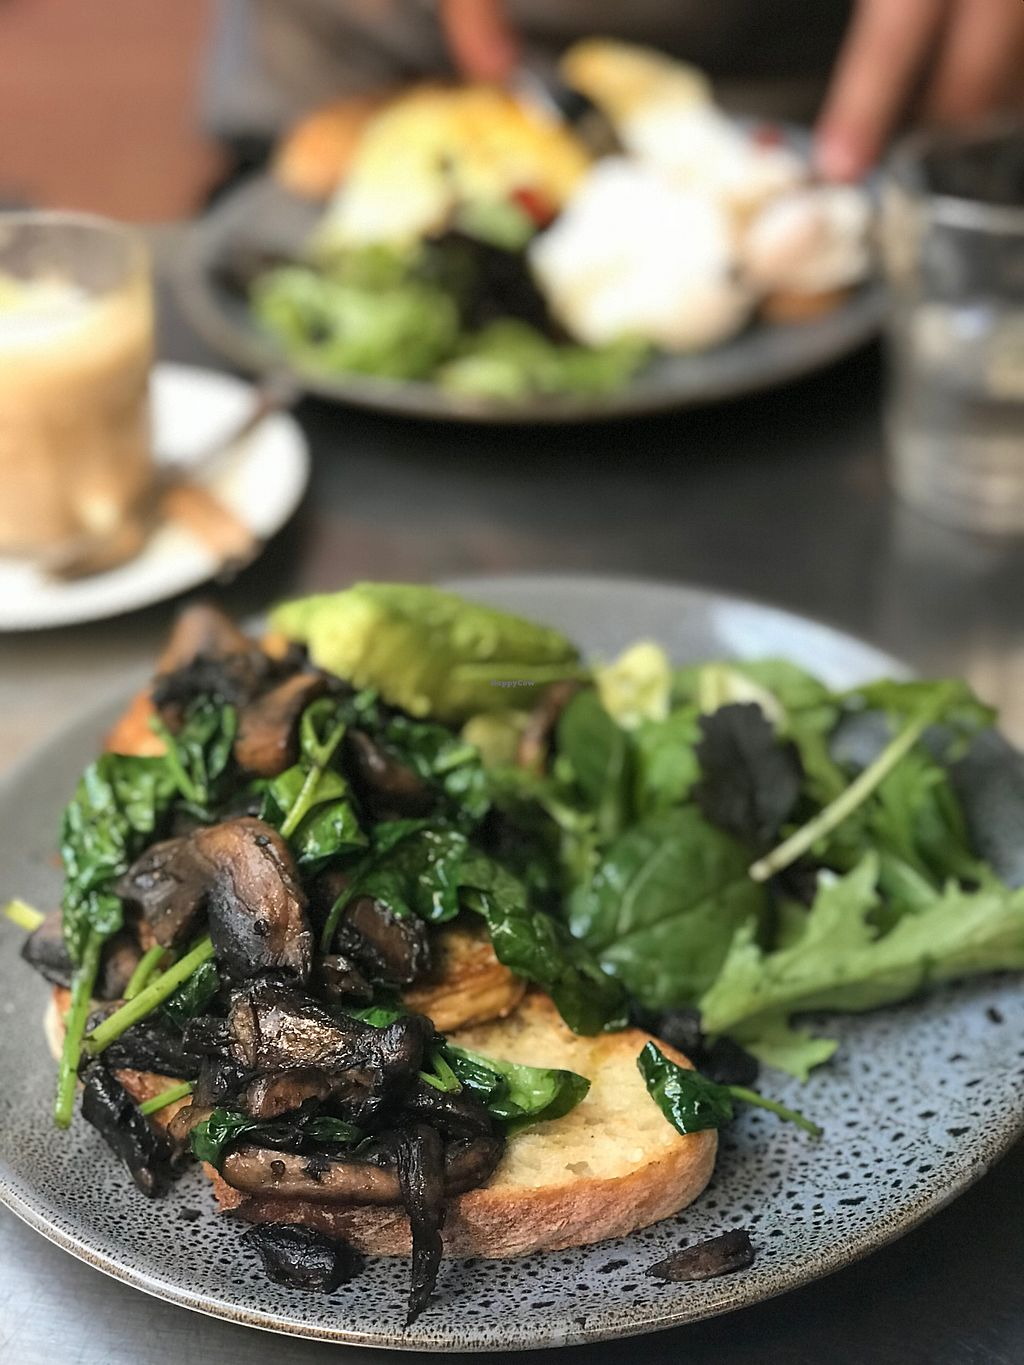 """Photo of Country Road Cafe  by <a href=""""/members/profile/swainjohnson"""">swainjohnson</a> <br/>Pesto mushroom w/ Avo <br/> January 8, 2018  - <a href='/contact/abuse/image/50100/344182'>Report</a>"""